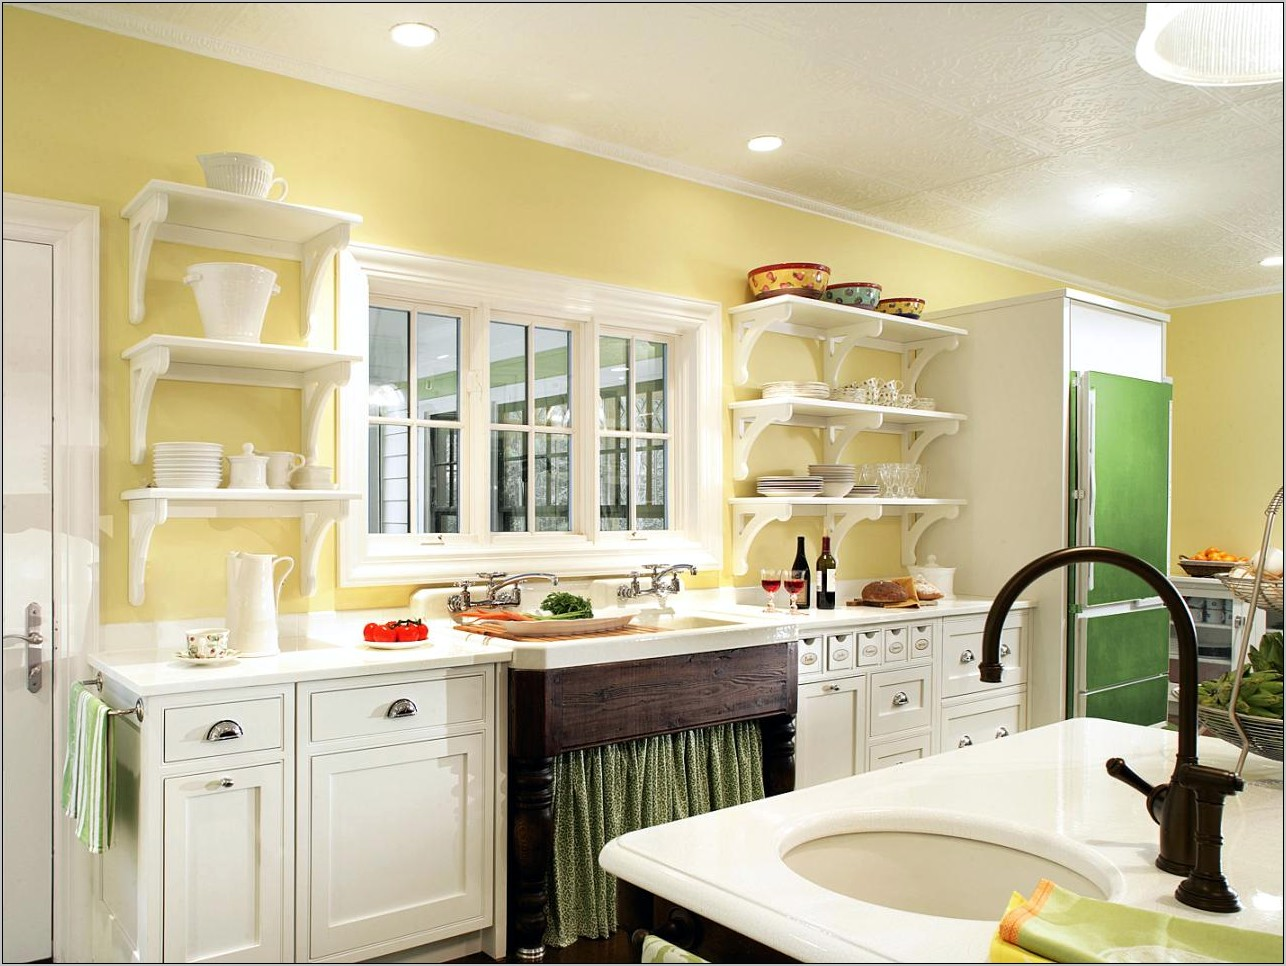 Kitchen Cabinets With Decorative Range Hoods